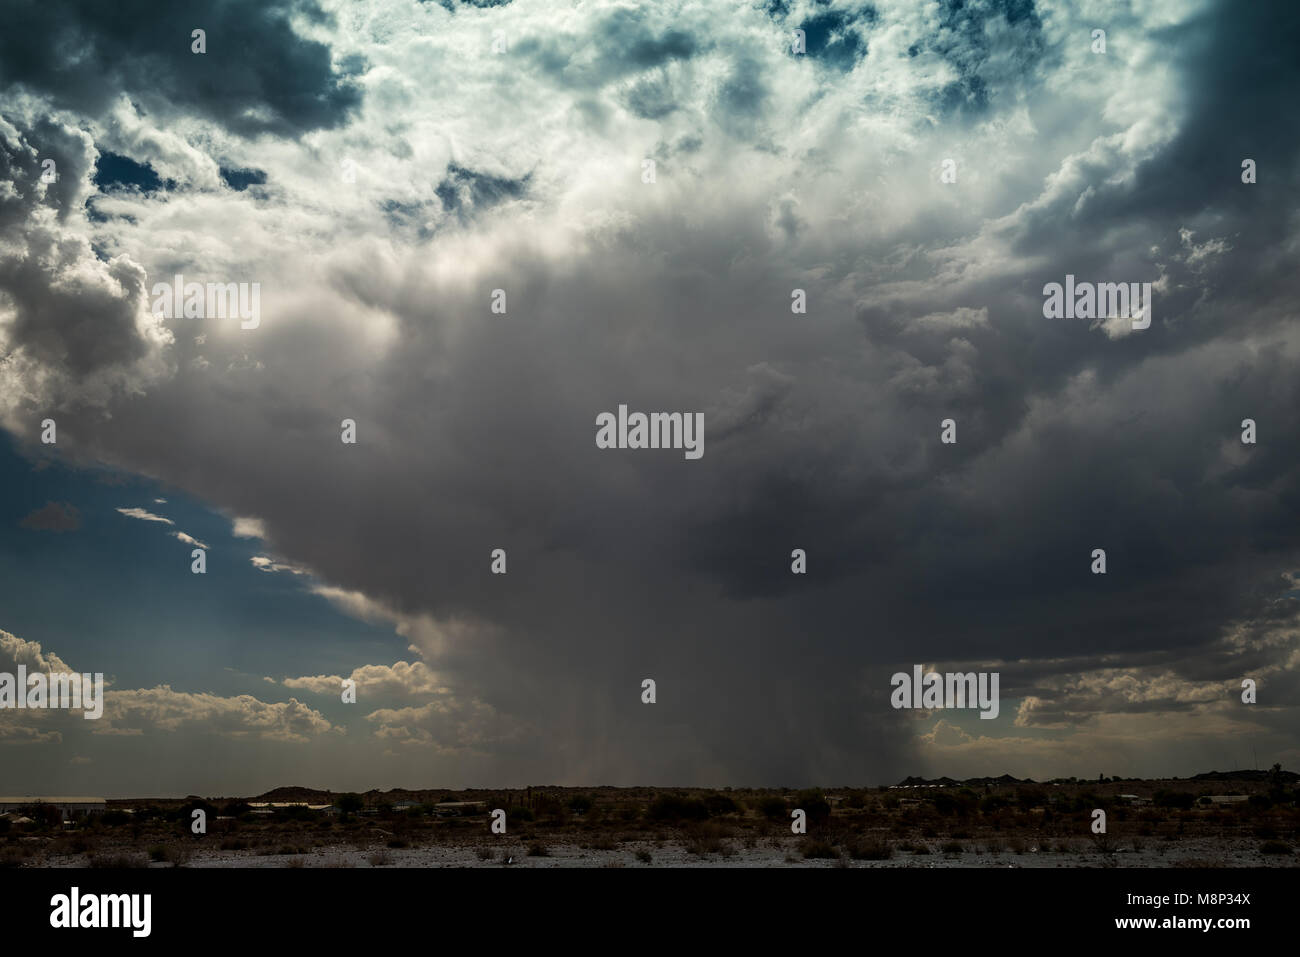 A cloudburst over the Namibian town of Keetmanshoop - Stock Image